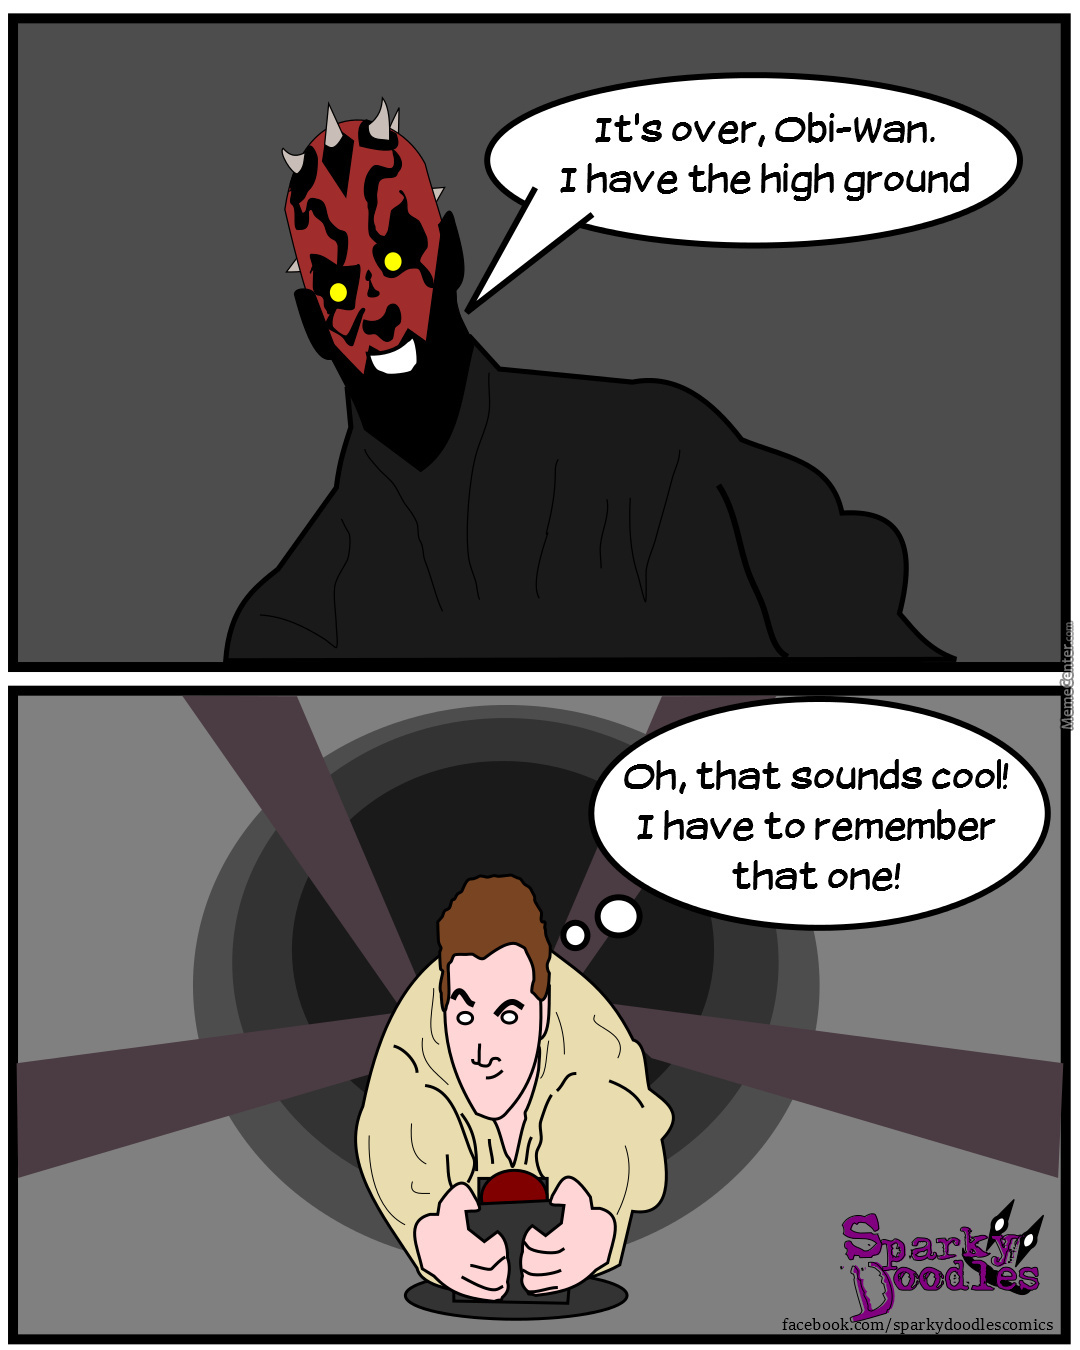 Sparky doodles origins of the high ground